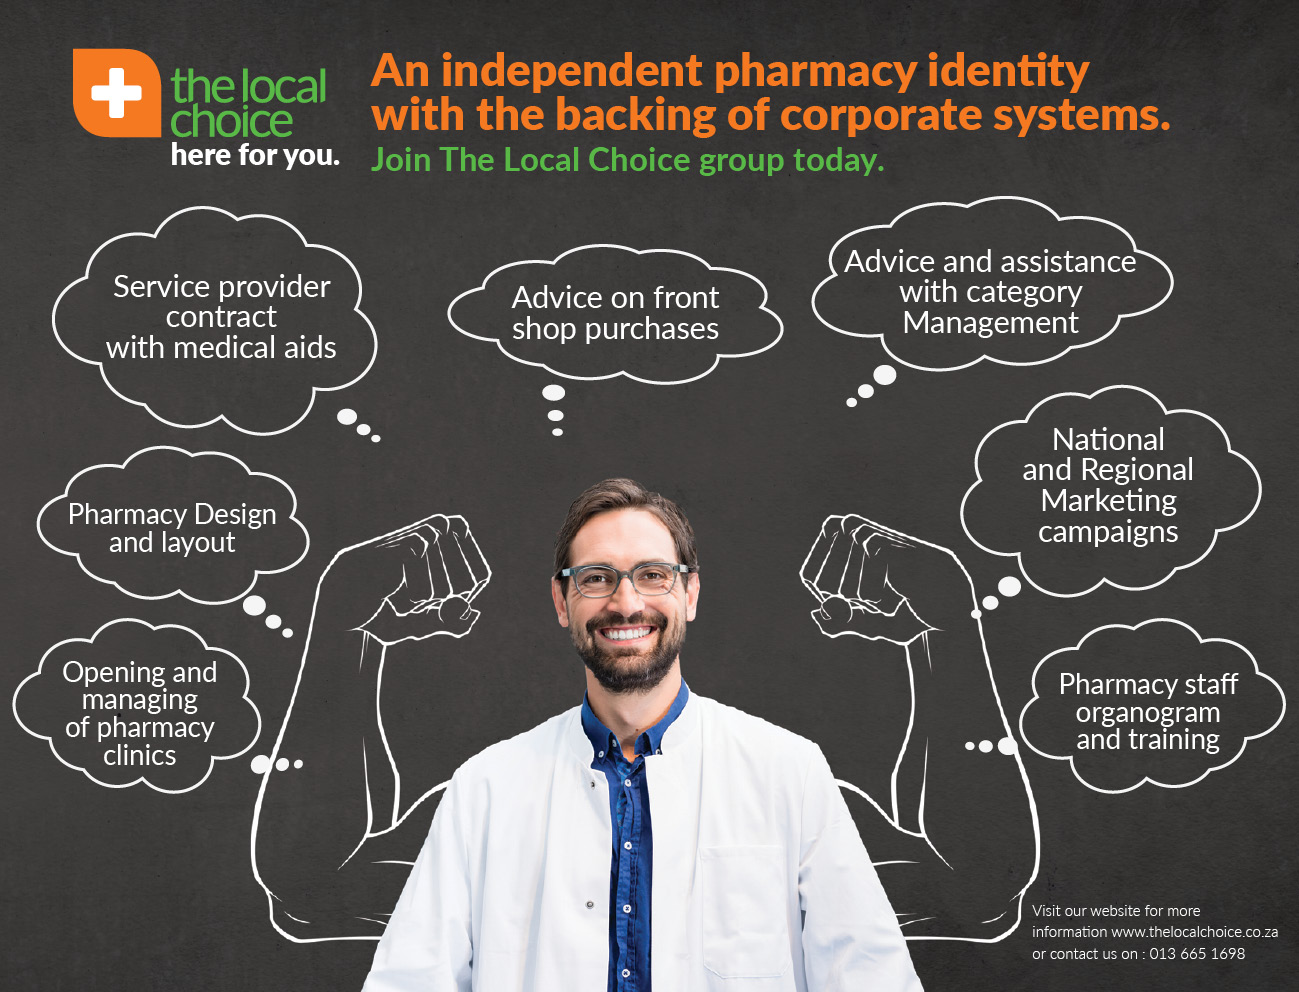 Franchise opportunity | The Local Choice Pharmacies